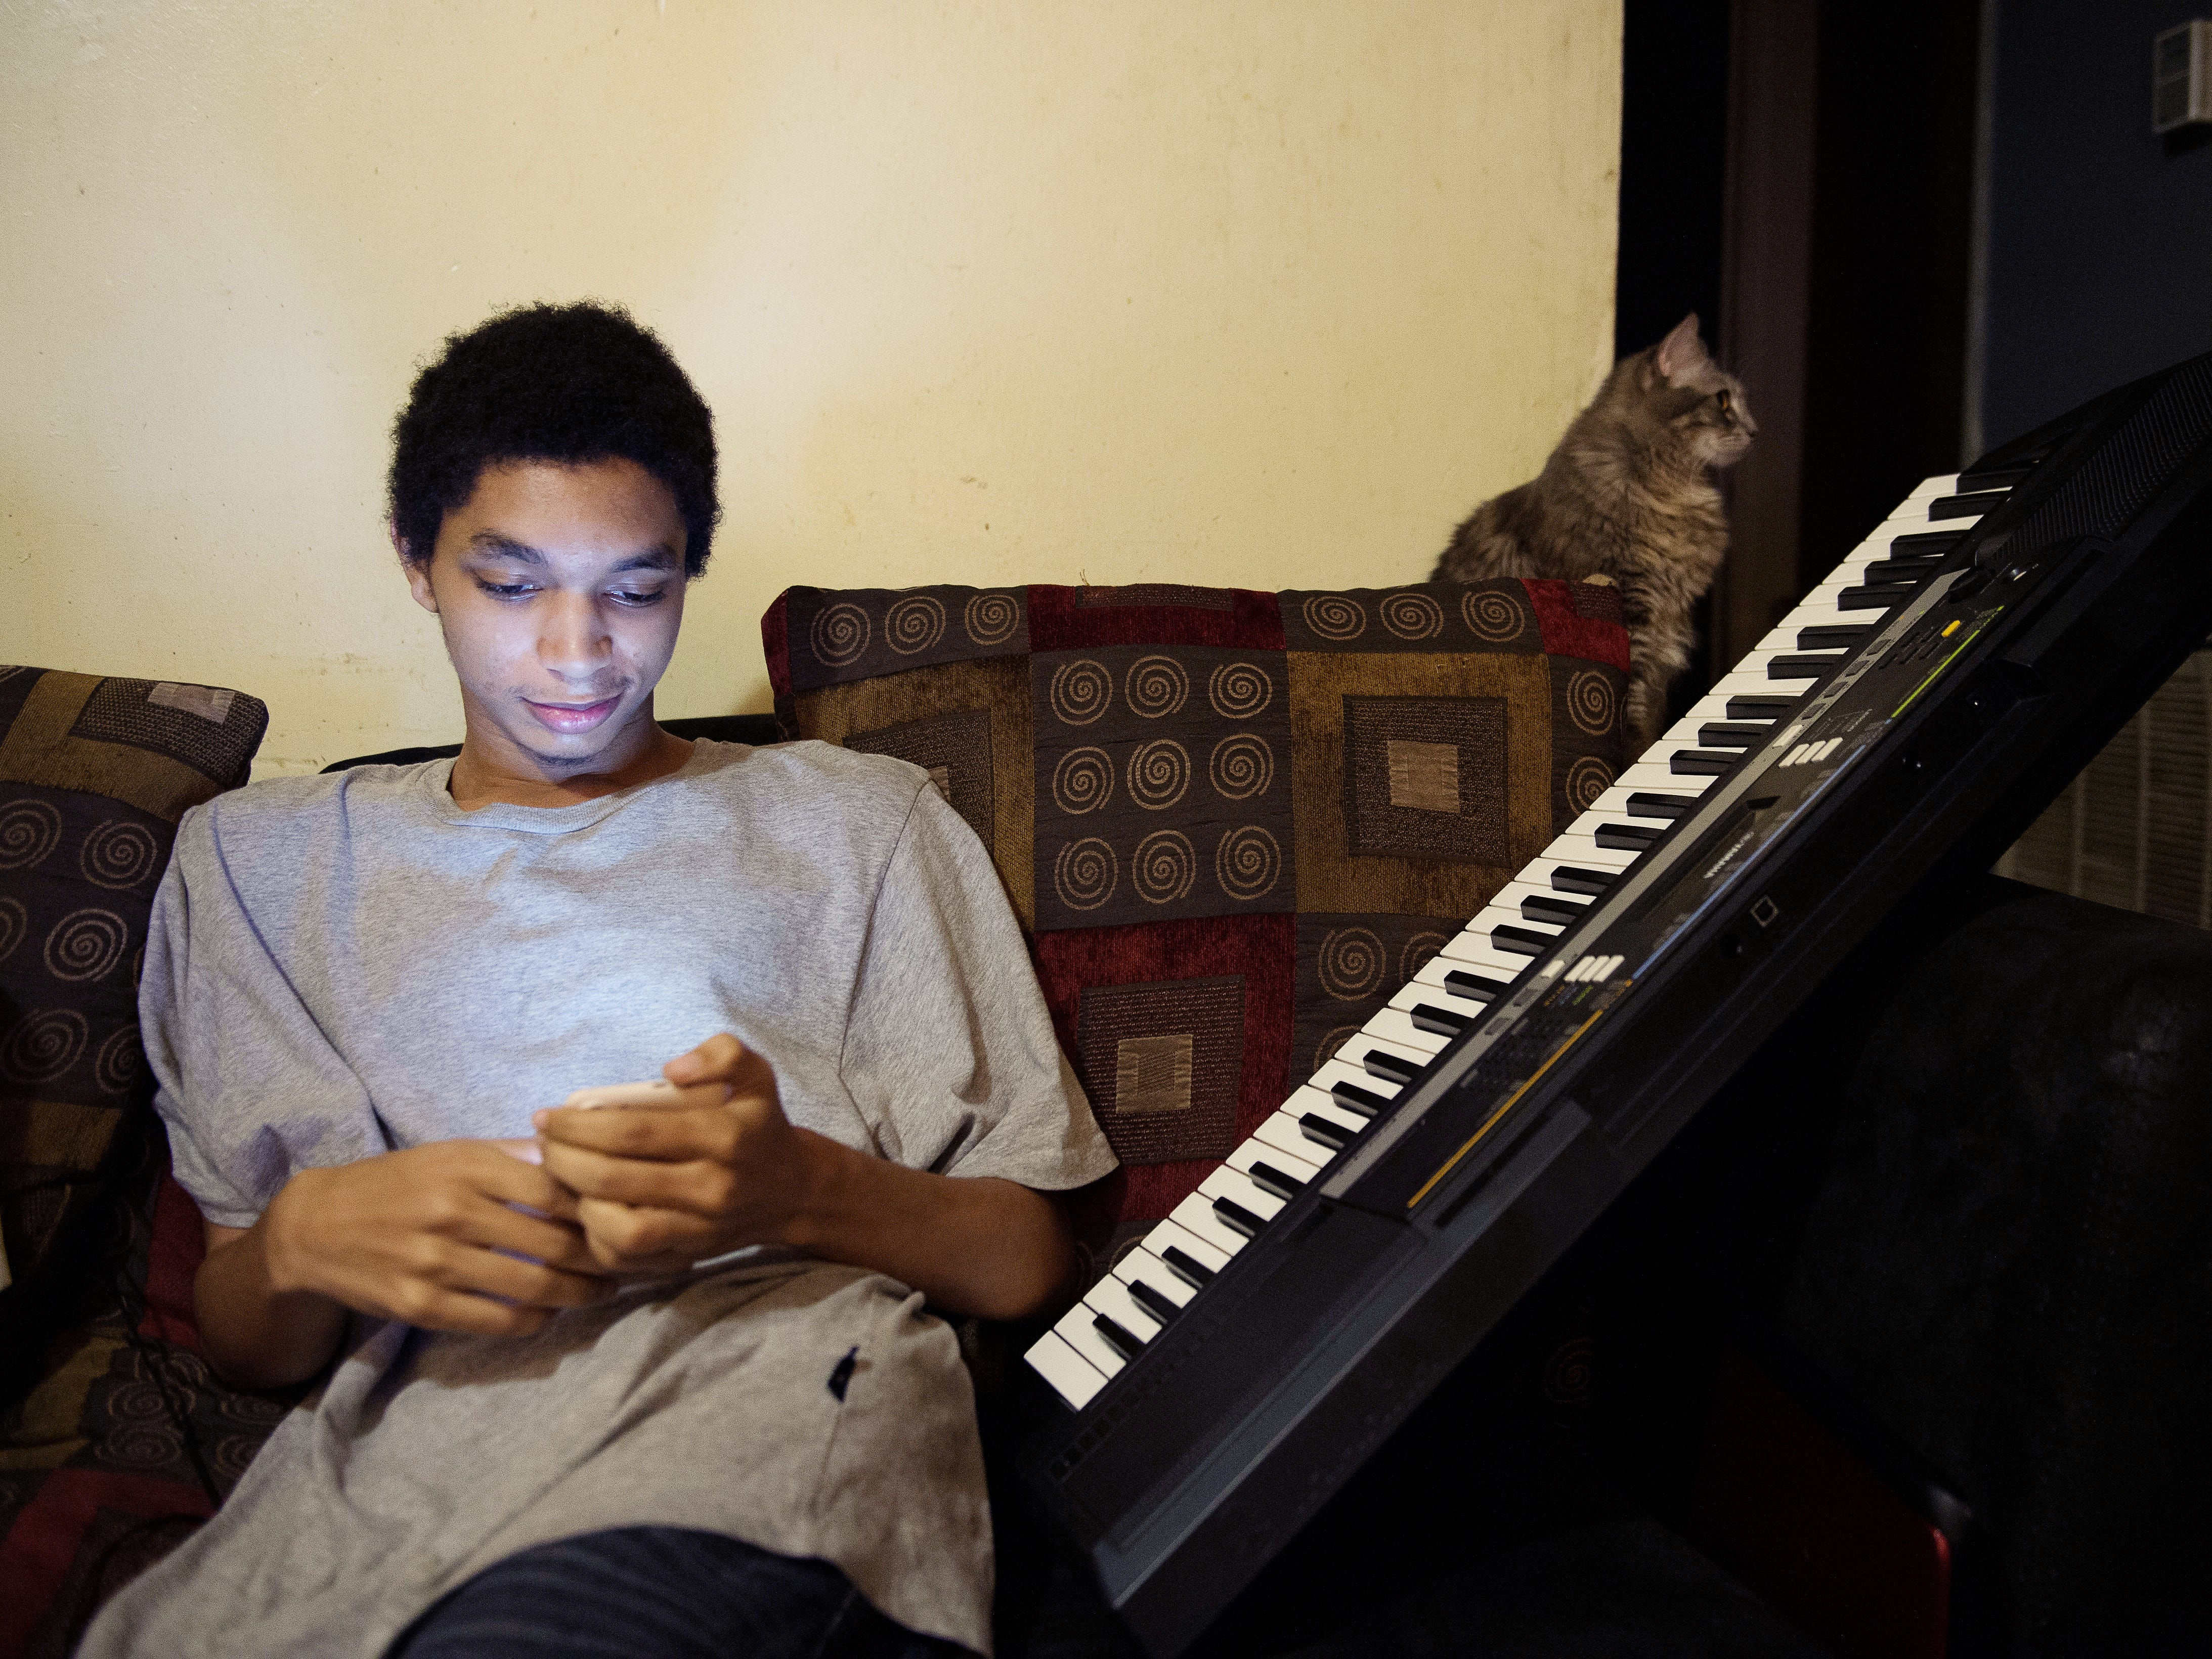 Timothy Parham, 19, son of LaConya Hampton, checks out his phone as he enjoys an evening at their apartment in James A. Cayce Homes on March 21, 2017.